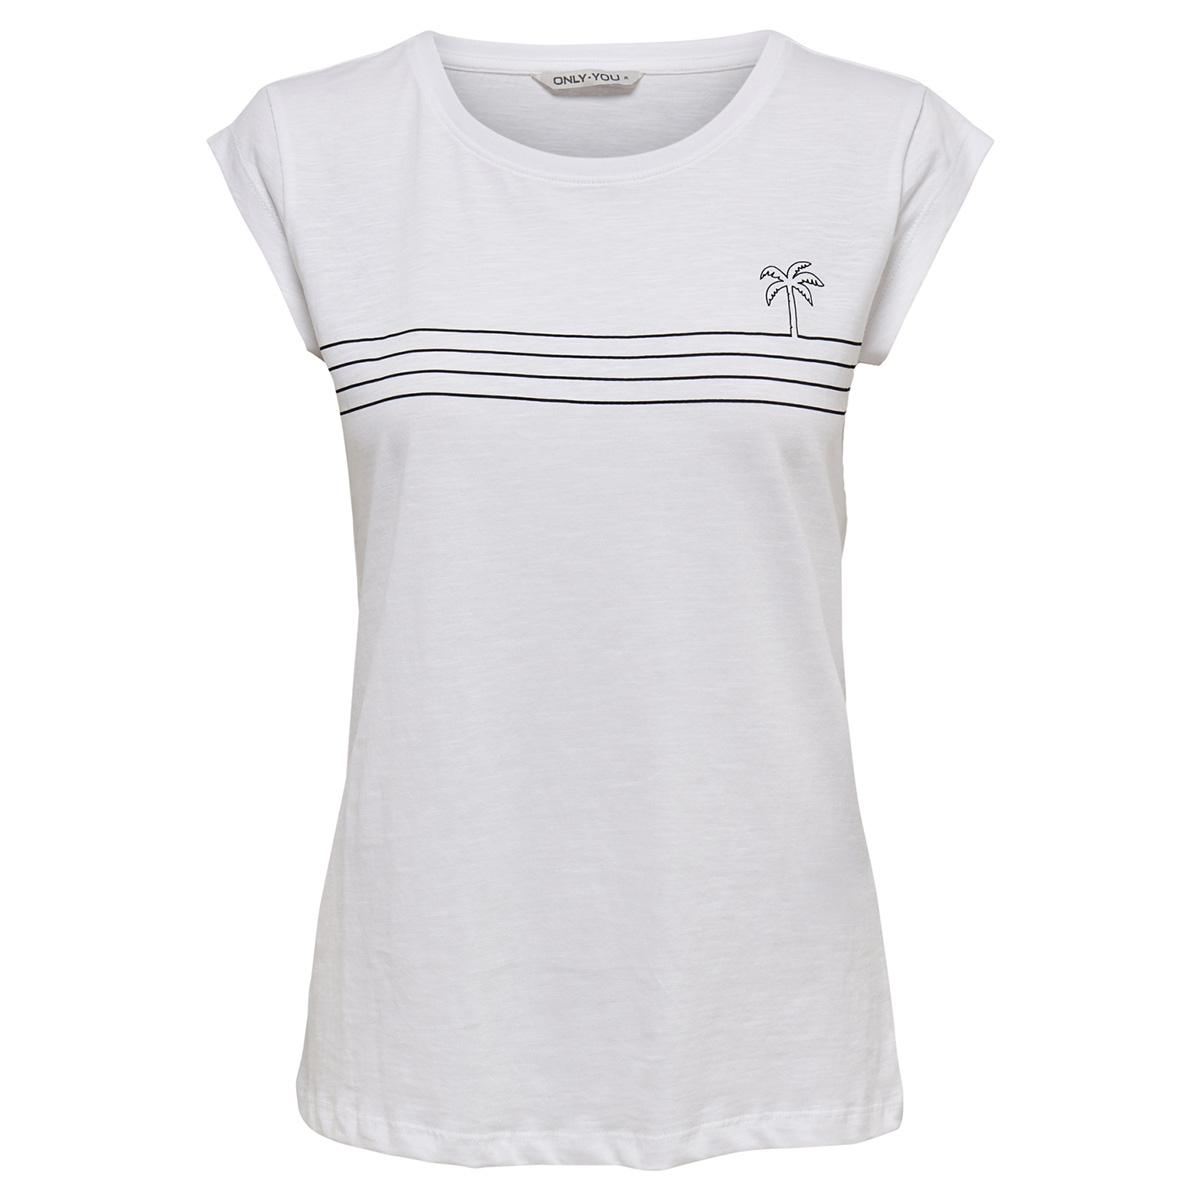 onybine s s top box jrs 15178086 only t-shirt bright white/black